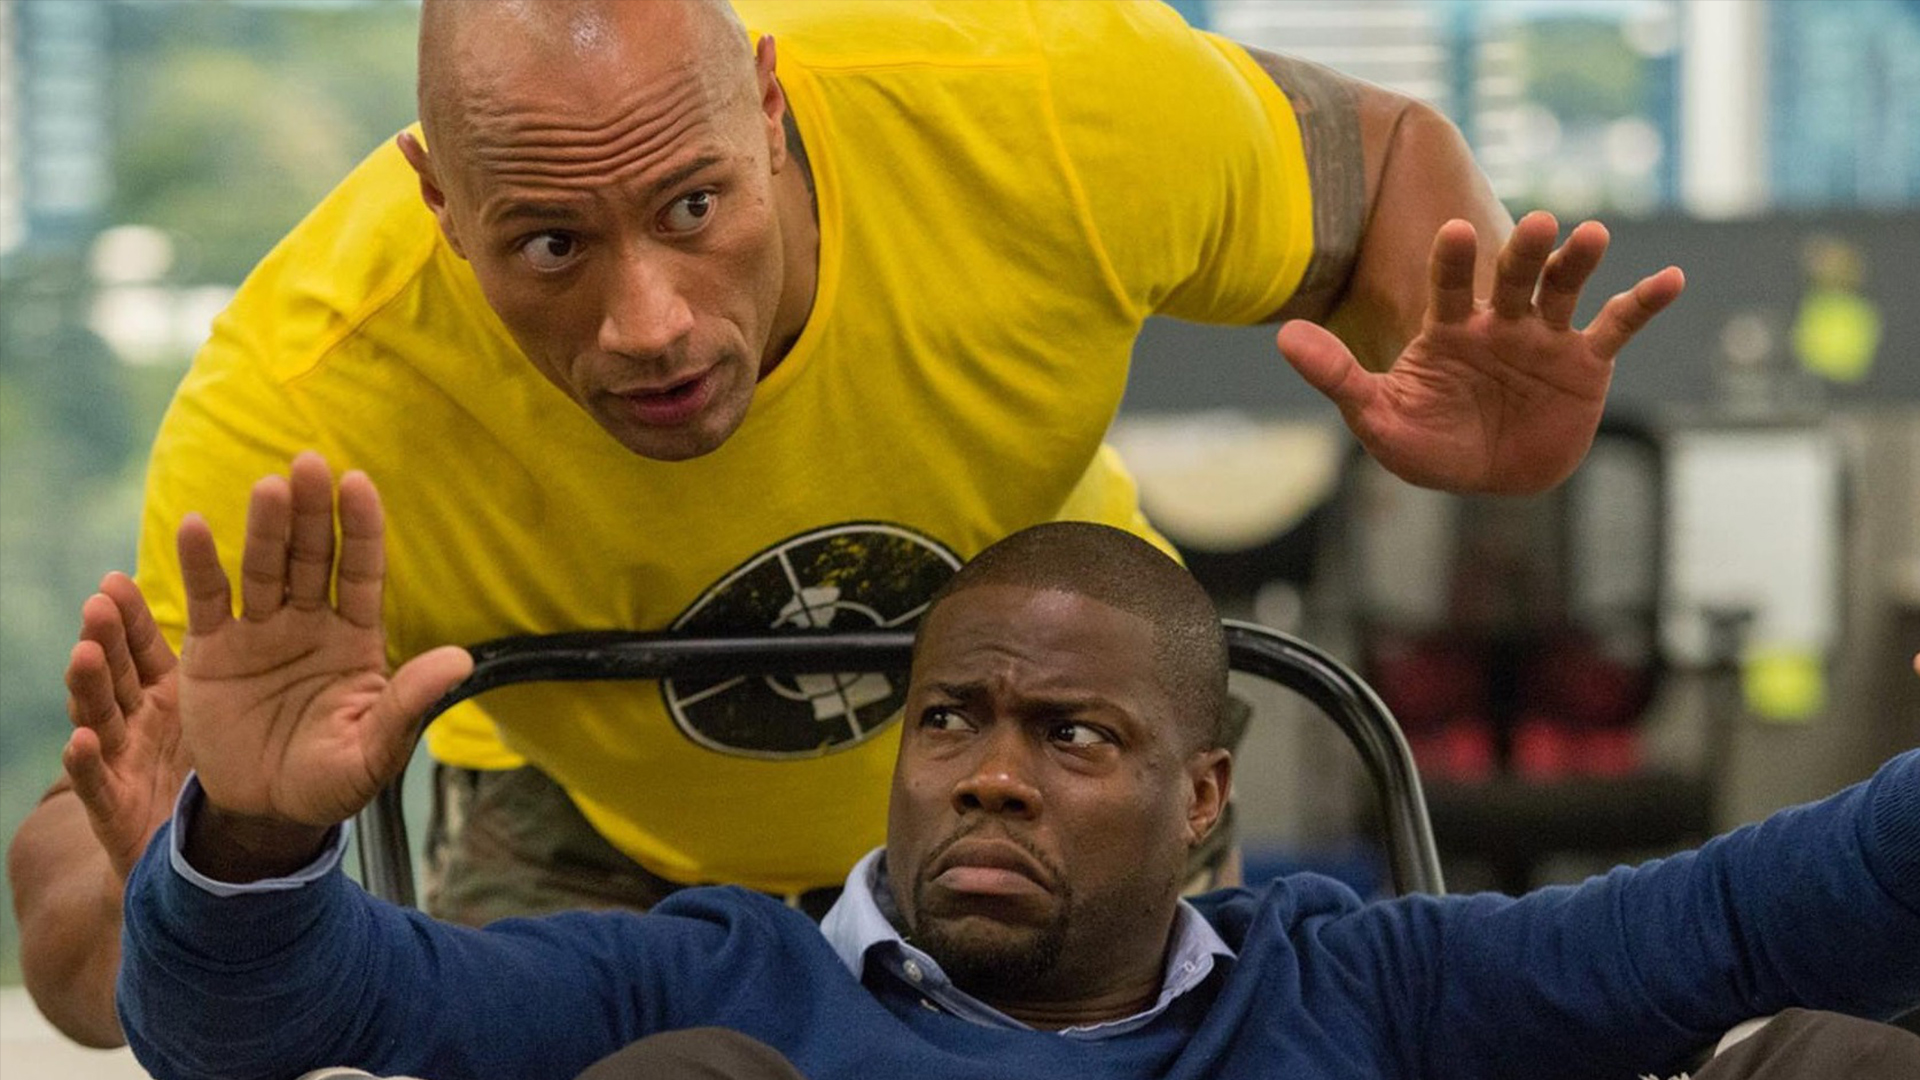 WATCH: TRAILER FOR KEVIN HART & DWAYNE JOHNSON'S NEW FILM 'CENTRAL INTELLIGENCE'!